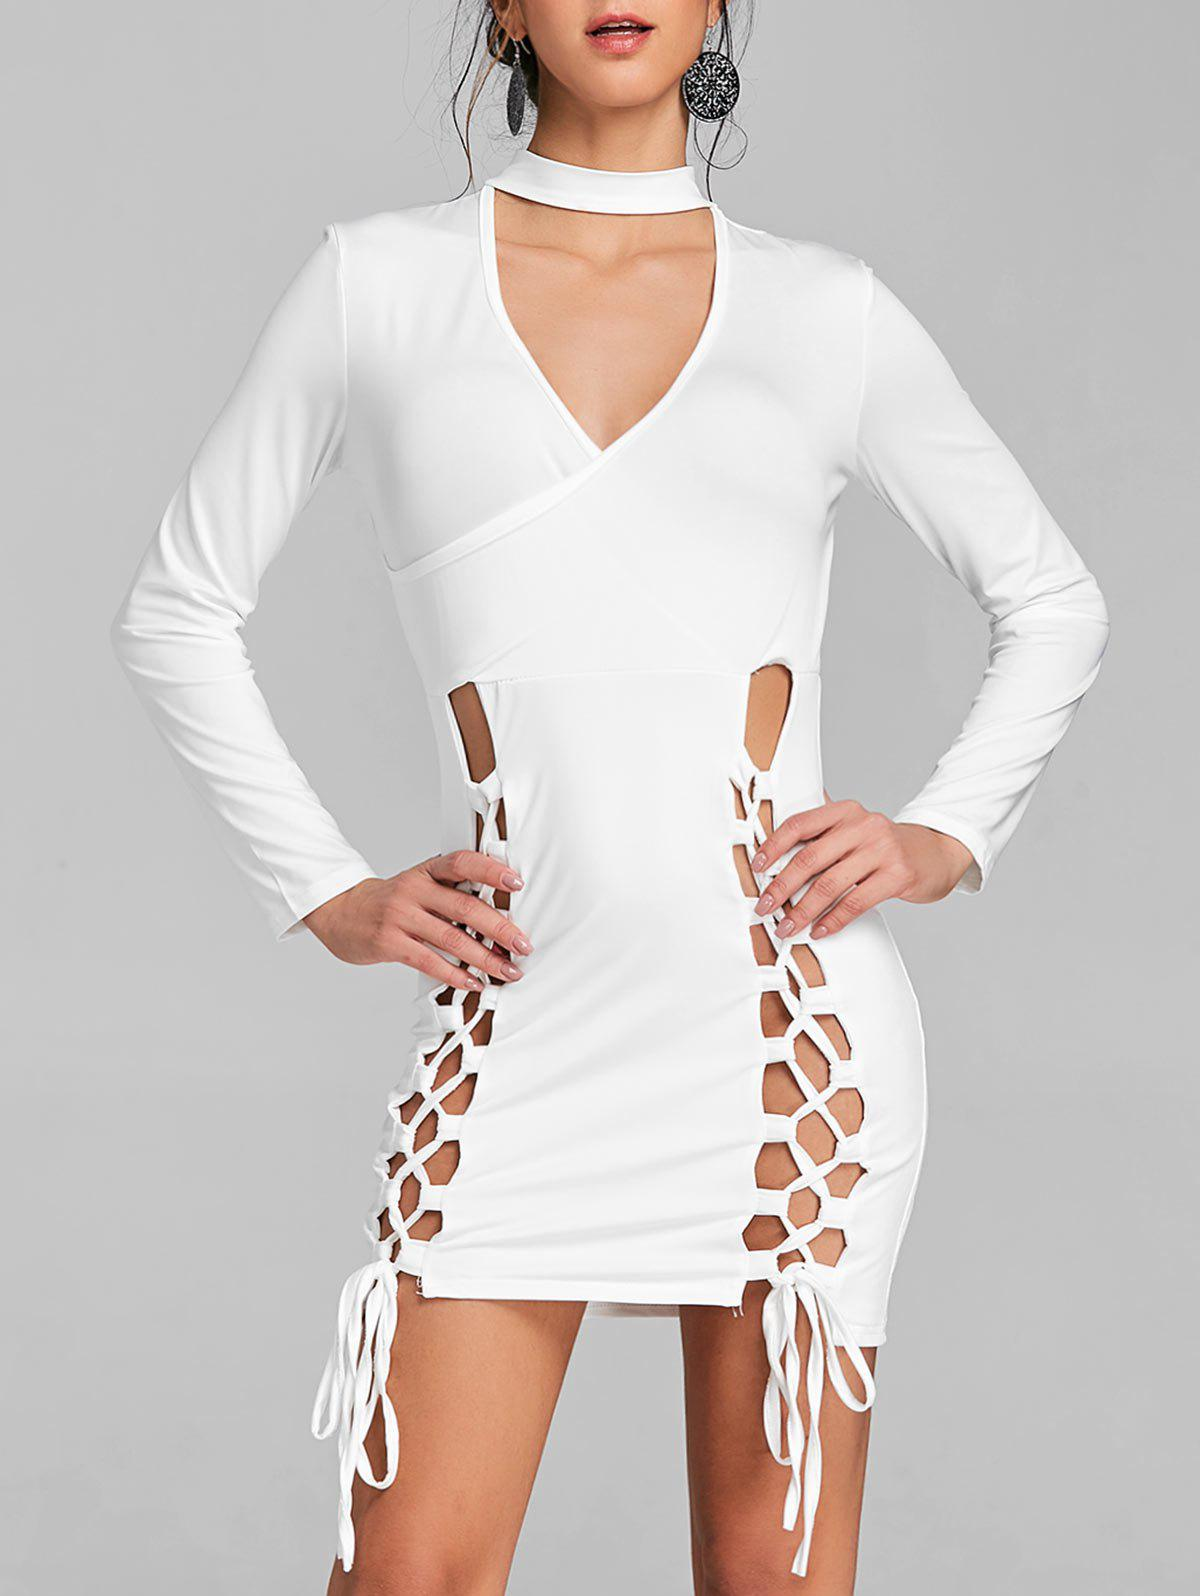 Lace Up Surplice Neck Choker Dress - WHITE S